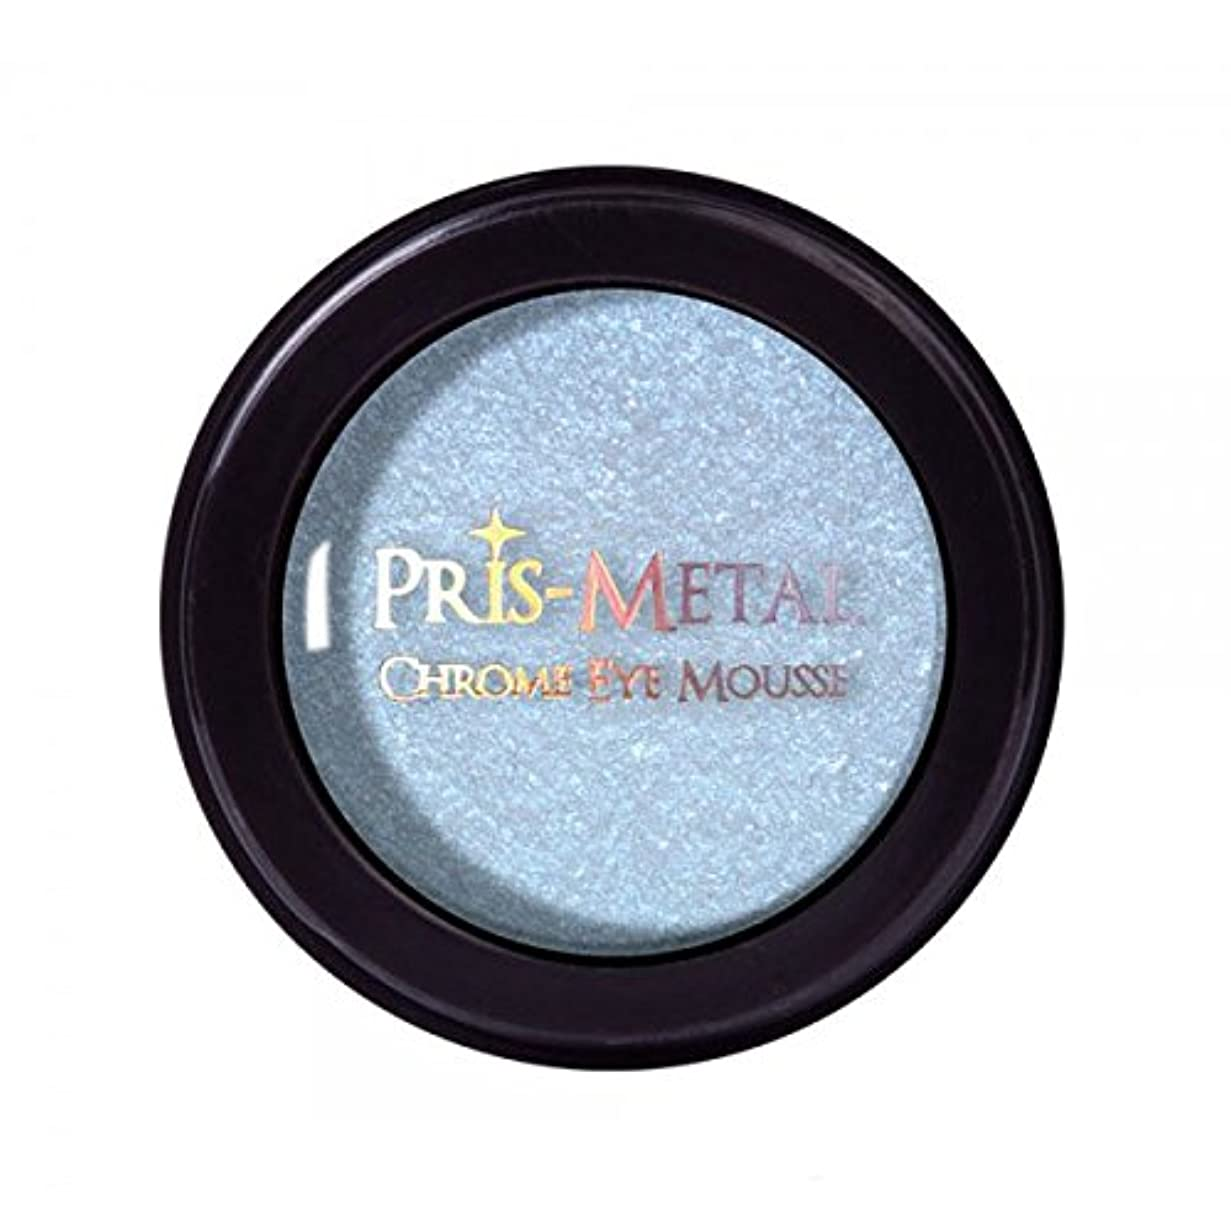 不安定練習陽気な(3 Pack) J. CAT BEAUTY Pris-Metal Chrome Eye Mousse - Dreamer (並行輸入品)